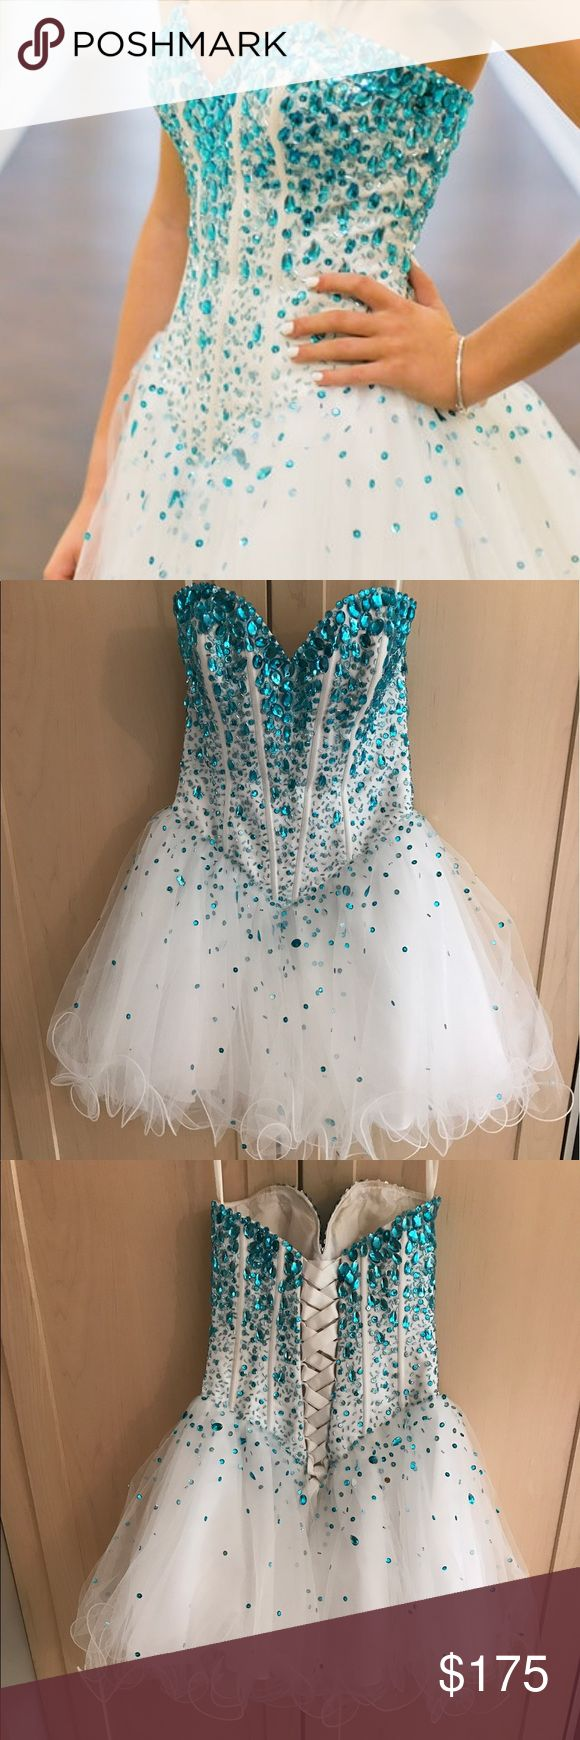 Aqua blue & white sequin dress Size 2, aqua and white sequin dress, worn once, pet free/smoke free home, corset back. Morilee Dresses Strapless